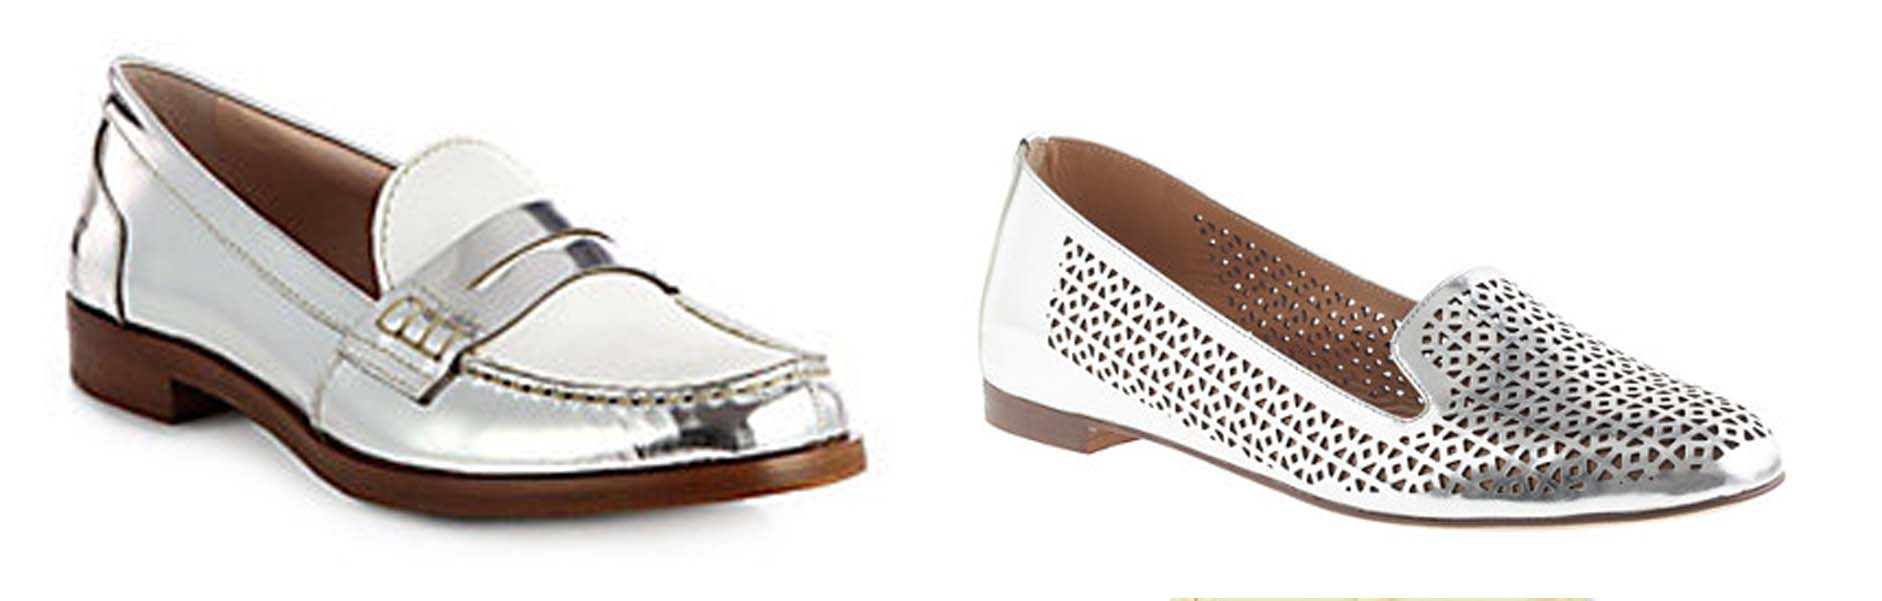 Miu Miu Metalic leather loafers (left) and J. Crew Cleo perforated mirror metallic loafers (Photos: Saks Fifth Avenue and J. Crew)